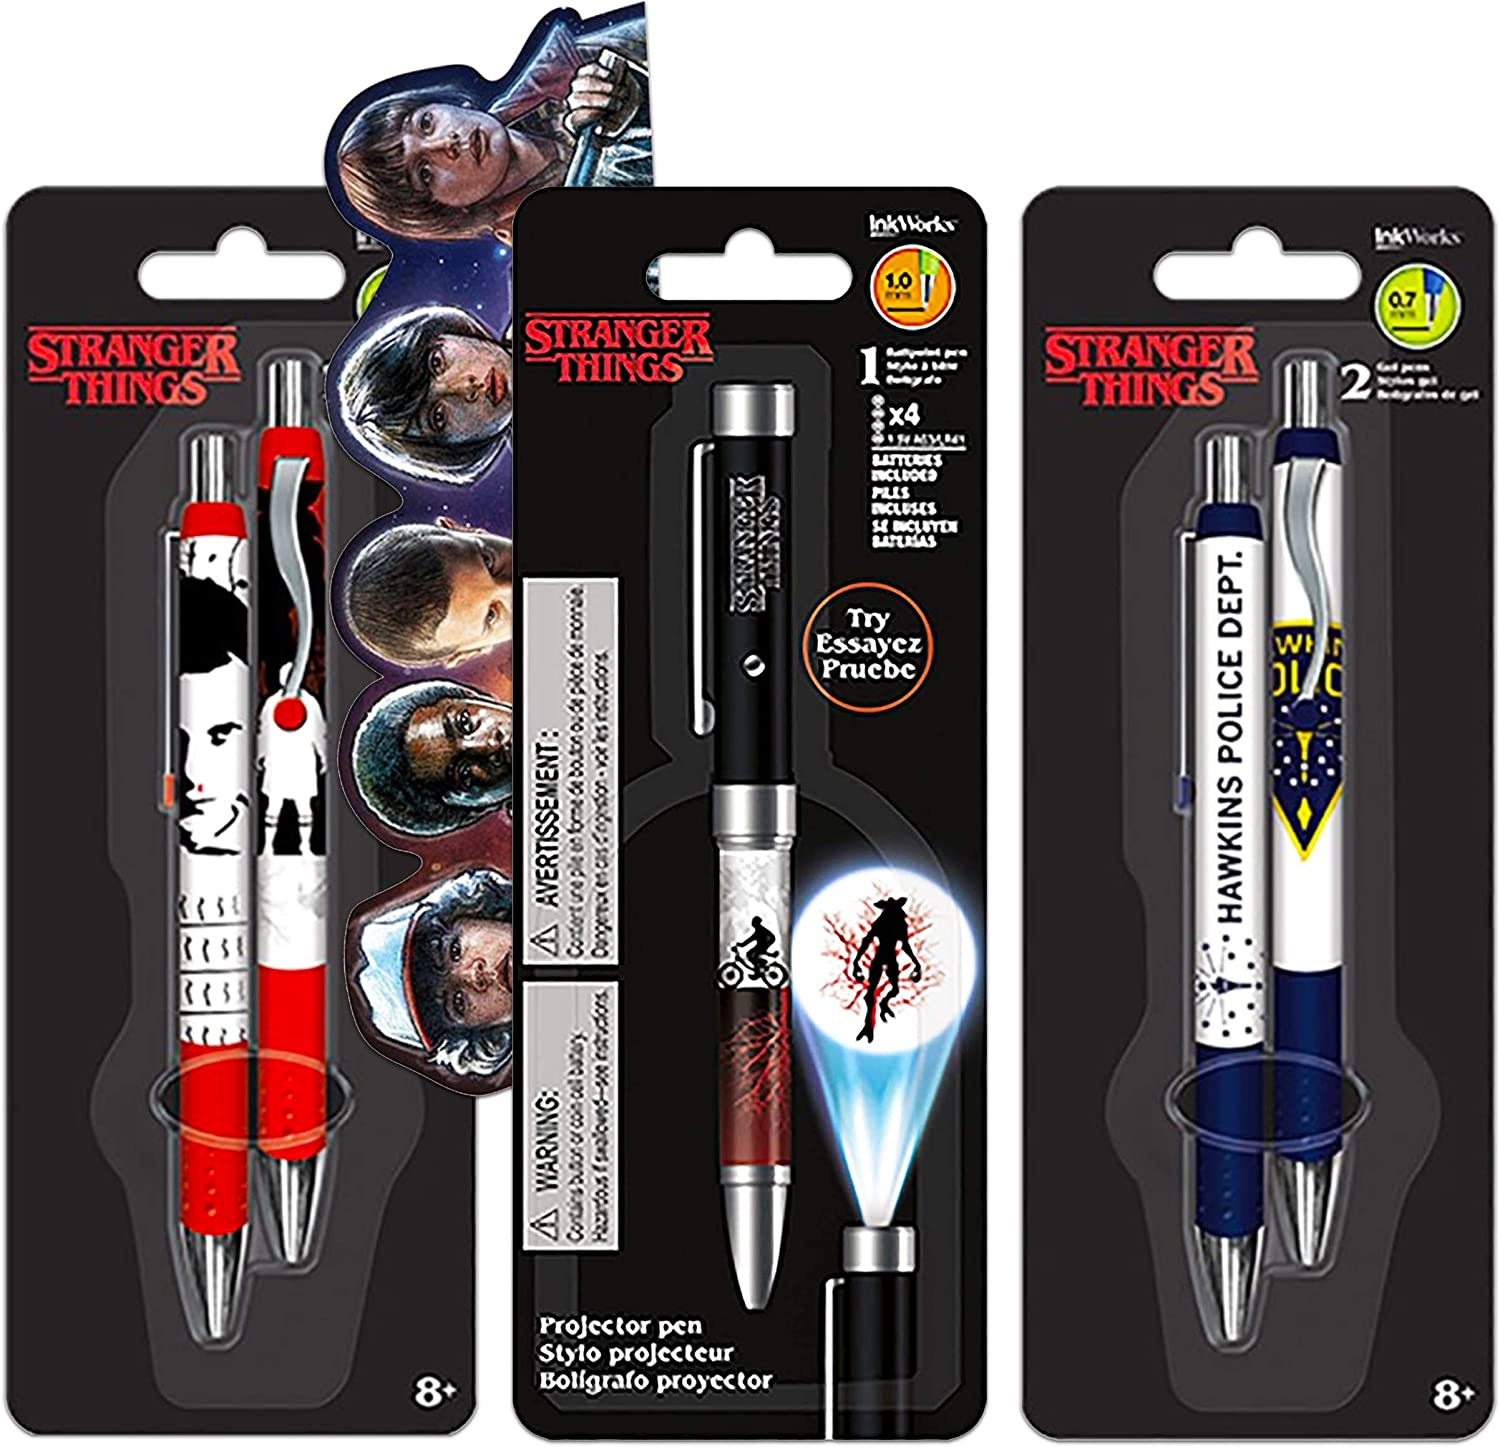 Stranger Things Pen Set Stranger Things School Supplies Bundle - 5 Pack Stranger Things Pens for Stranger Things Party Decorations (Stranger Things Office Decor)